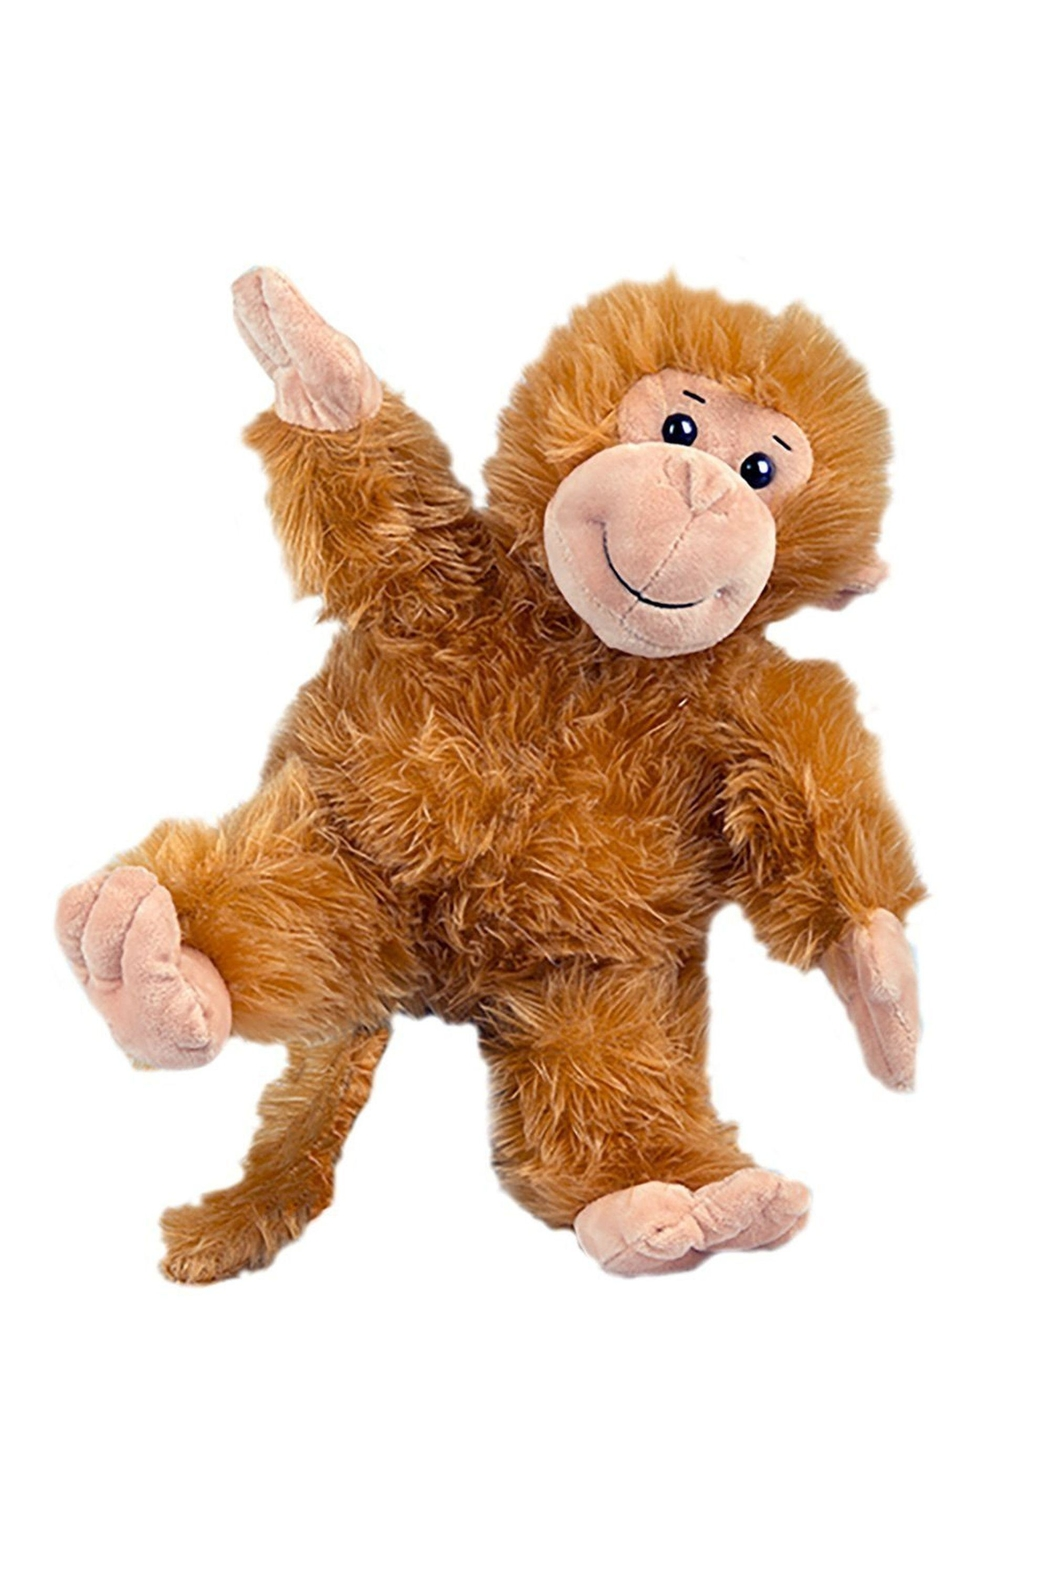 Teddy Mountain Cheeky Monkey Stuffed Animal From Nebraska By Teddy